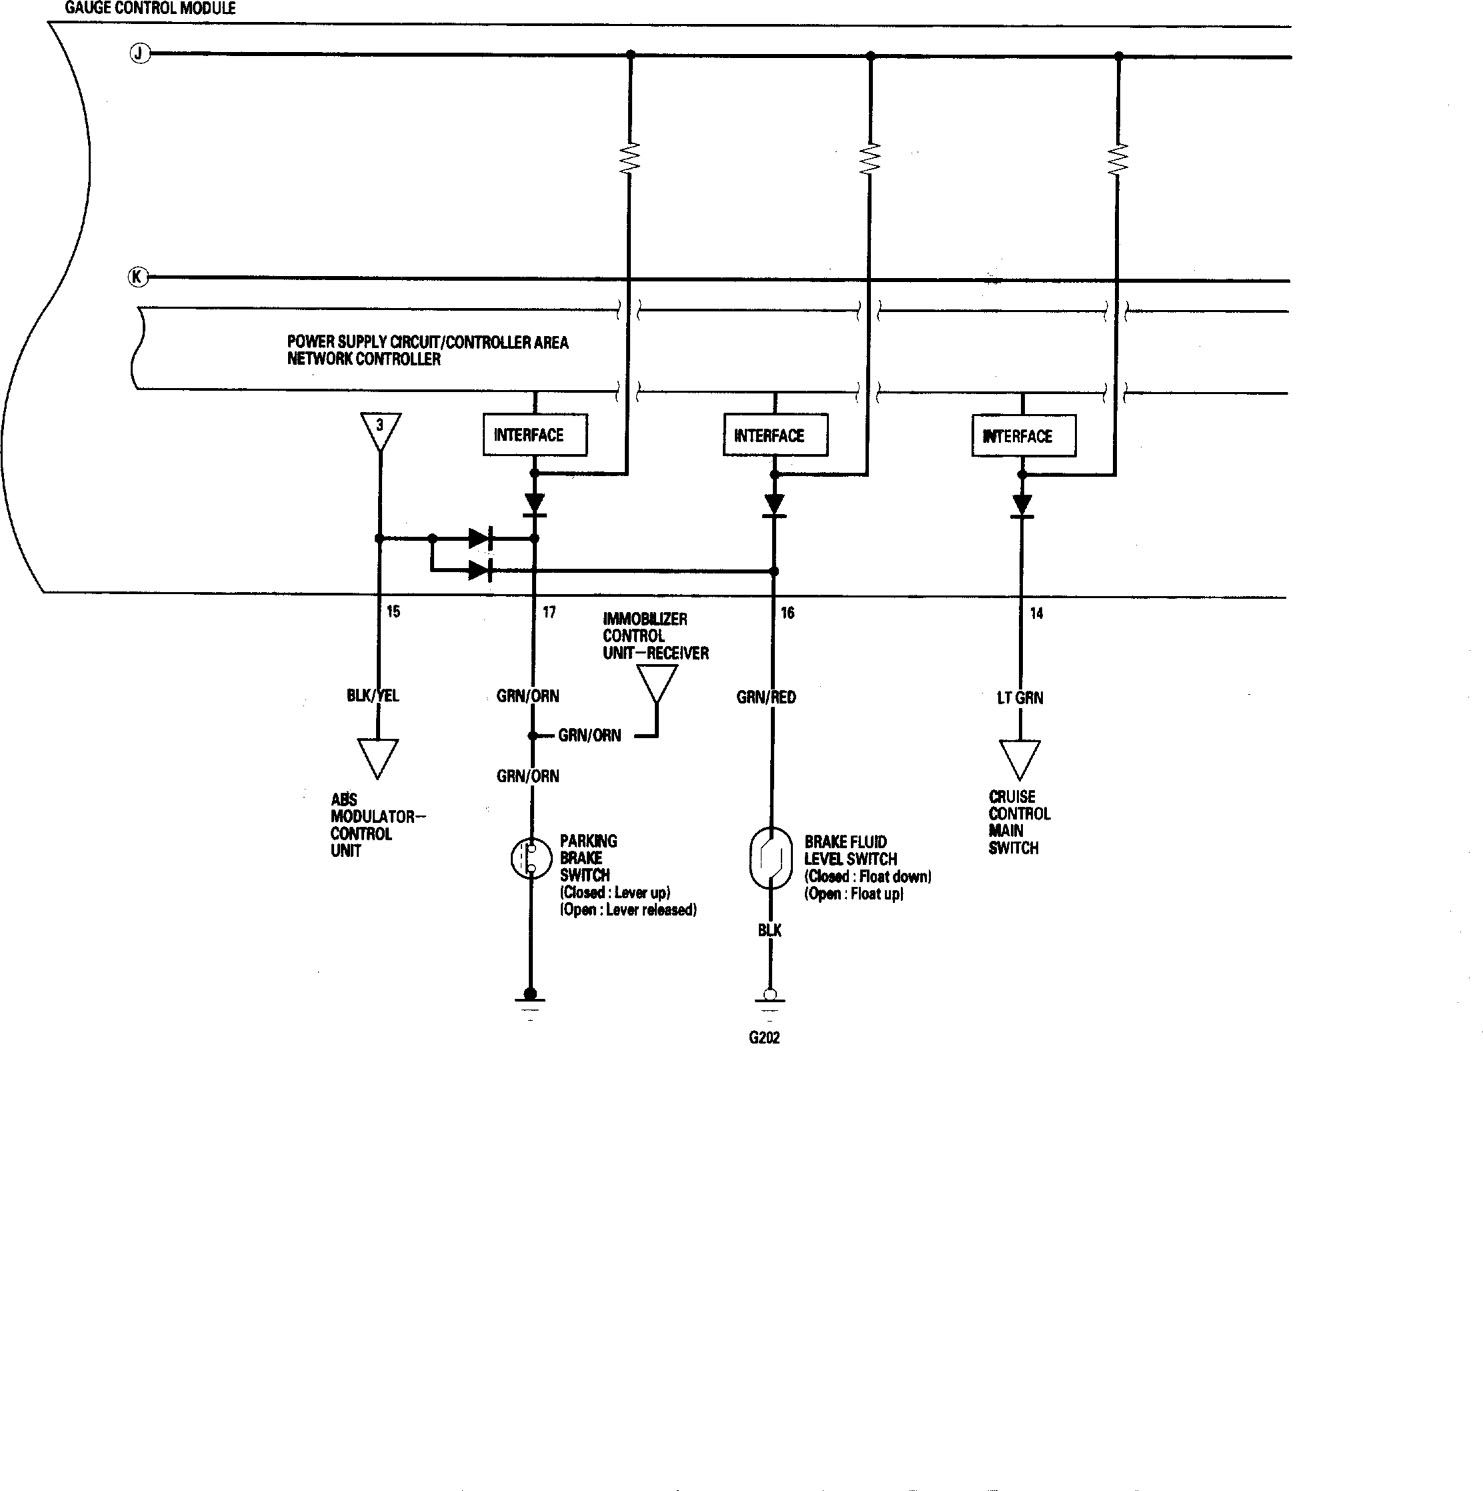 Honda Accord (2006) - wiring diagrams - instrumentation ... on volvo 850 suspension, volvo 850 shop manual, volvo ignition wiring diagram, mercedes e320 wiring diagram, dodge omni wiring diagram, volvo amazon wiring diagram, pontiac trans sport wiring diagram, chrysler crossfire wiring diagram, bmw e90 wiring diagram, porsche cayenne wiring diagram, chevrolet volt wiring diagram, volvo 850 water pump, mercury milan wiring diagram, saturn aura wiring diagram, volkswagen golf wiring diagram, chevrolet hhr wiring diagram, honda ascot wiring diagram, geo storm wiring diagram, volkswagen cabrio wiring diagram, mitsubishi starion wiring diagram,